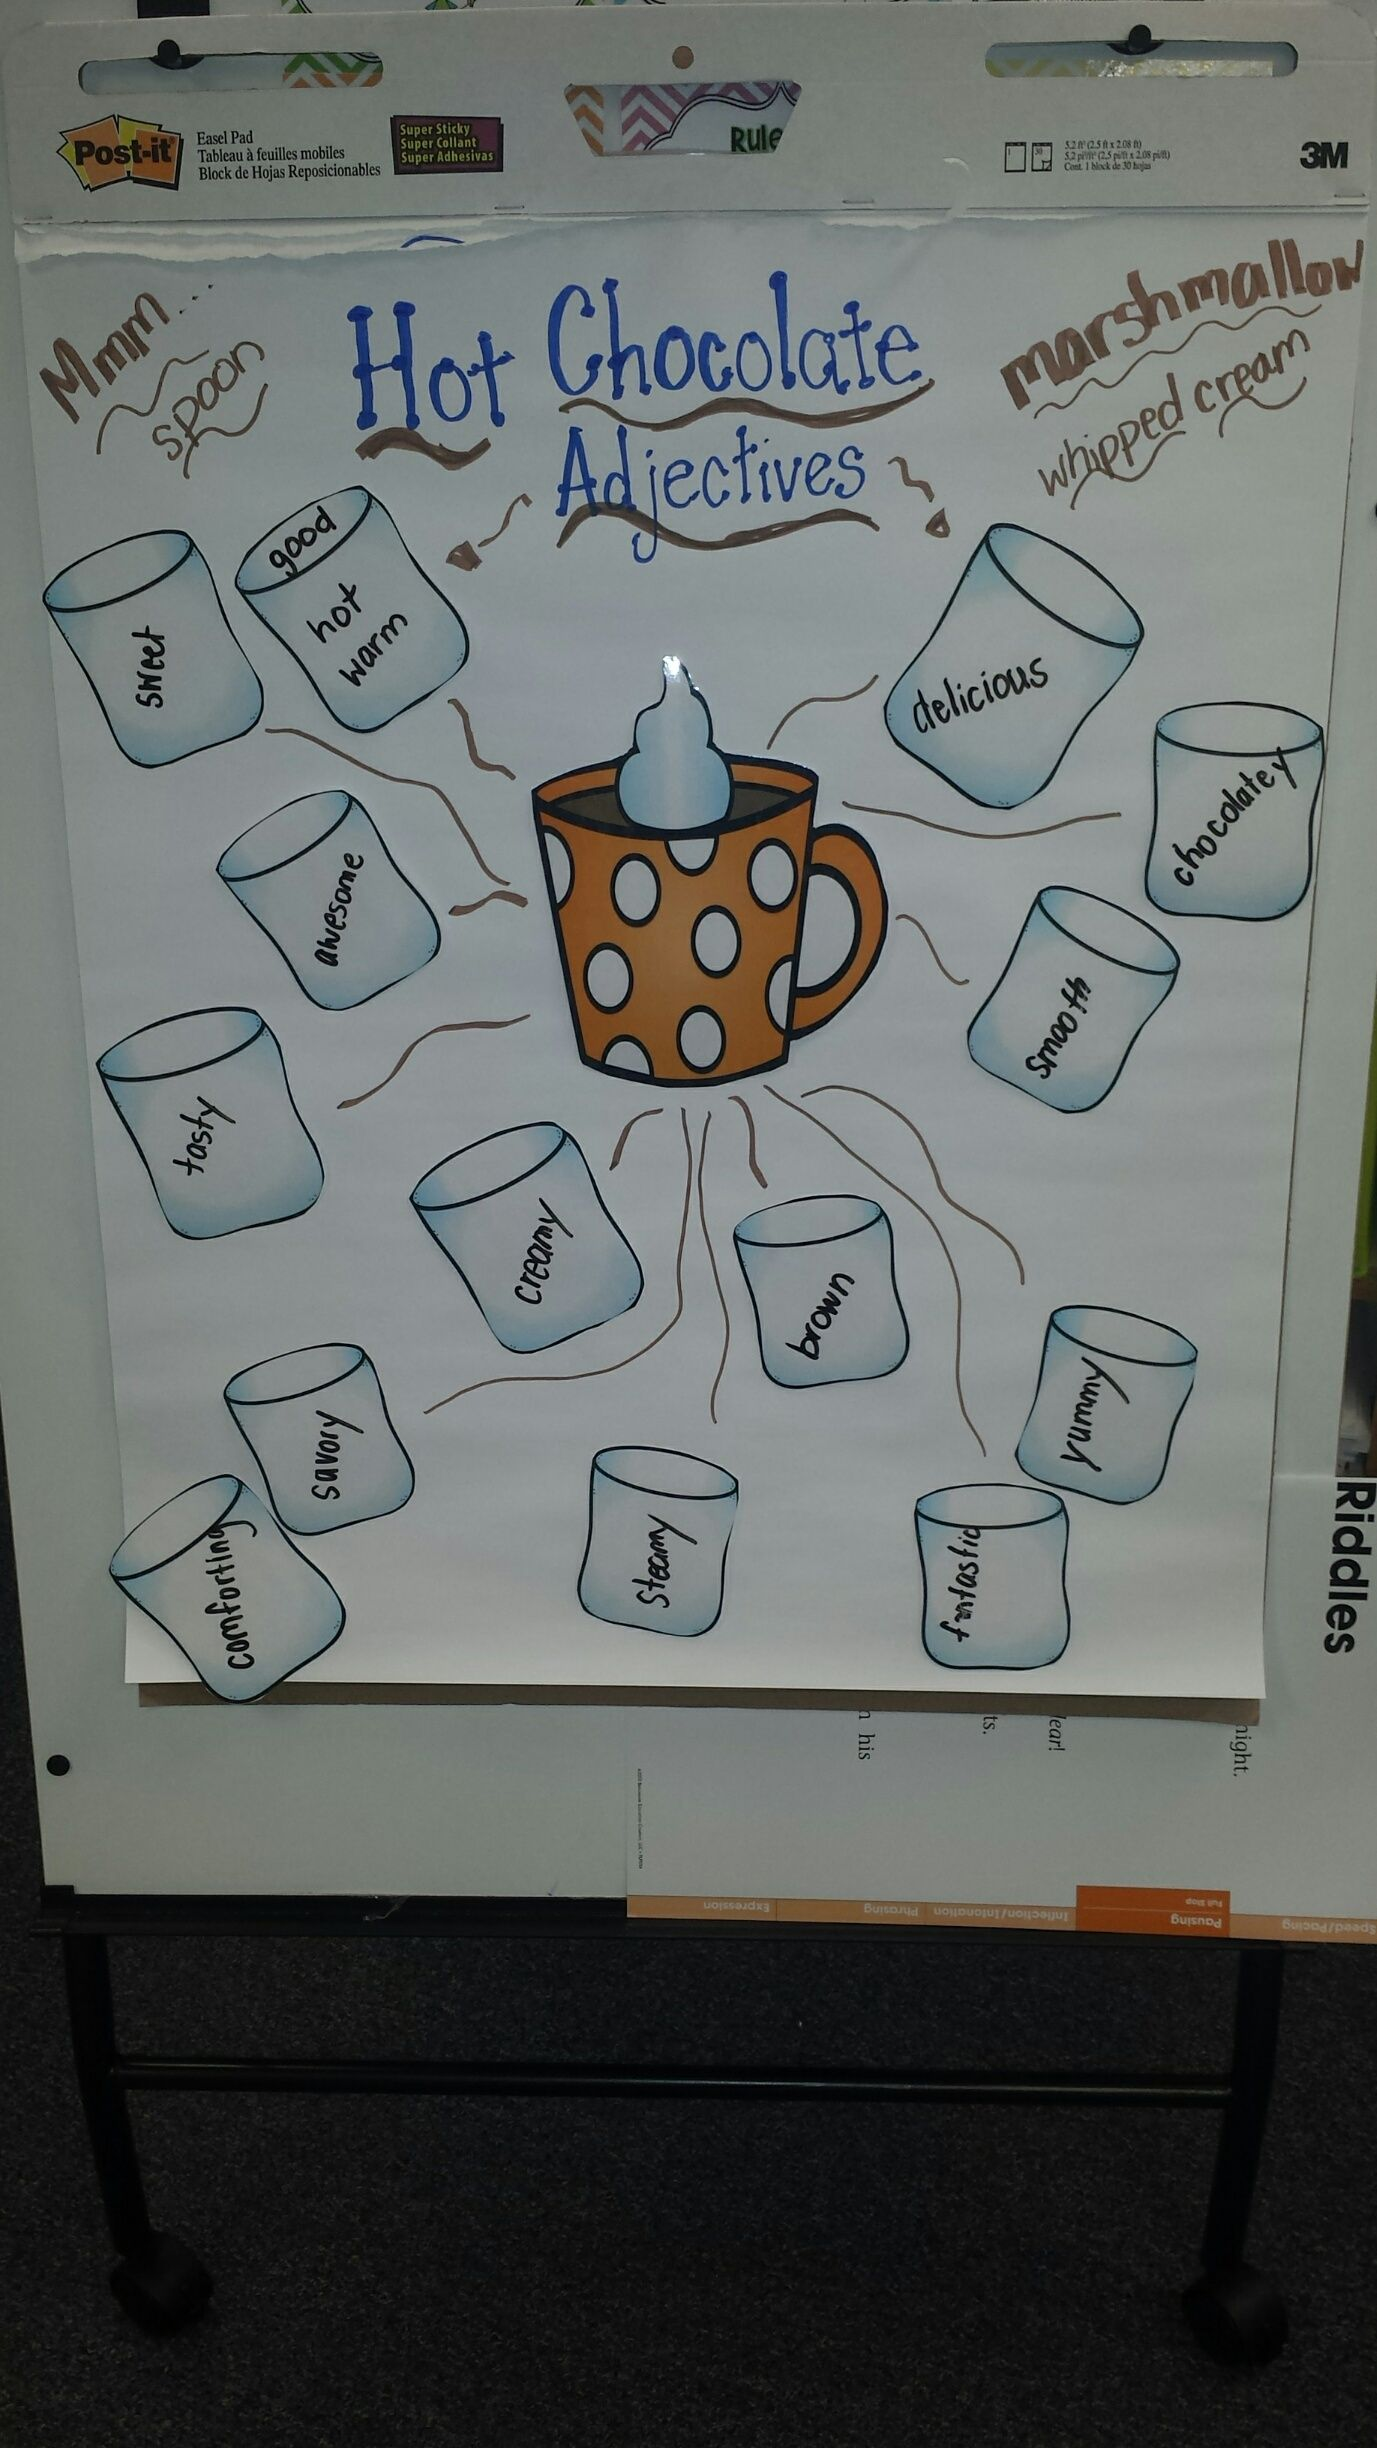 Sequencing And Adjectives Made Fun With Hot Chocolate